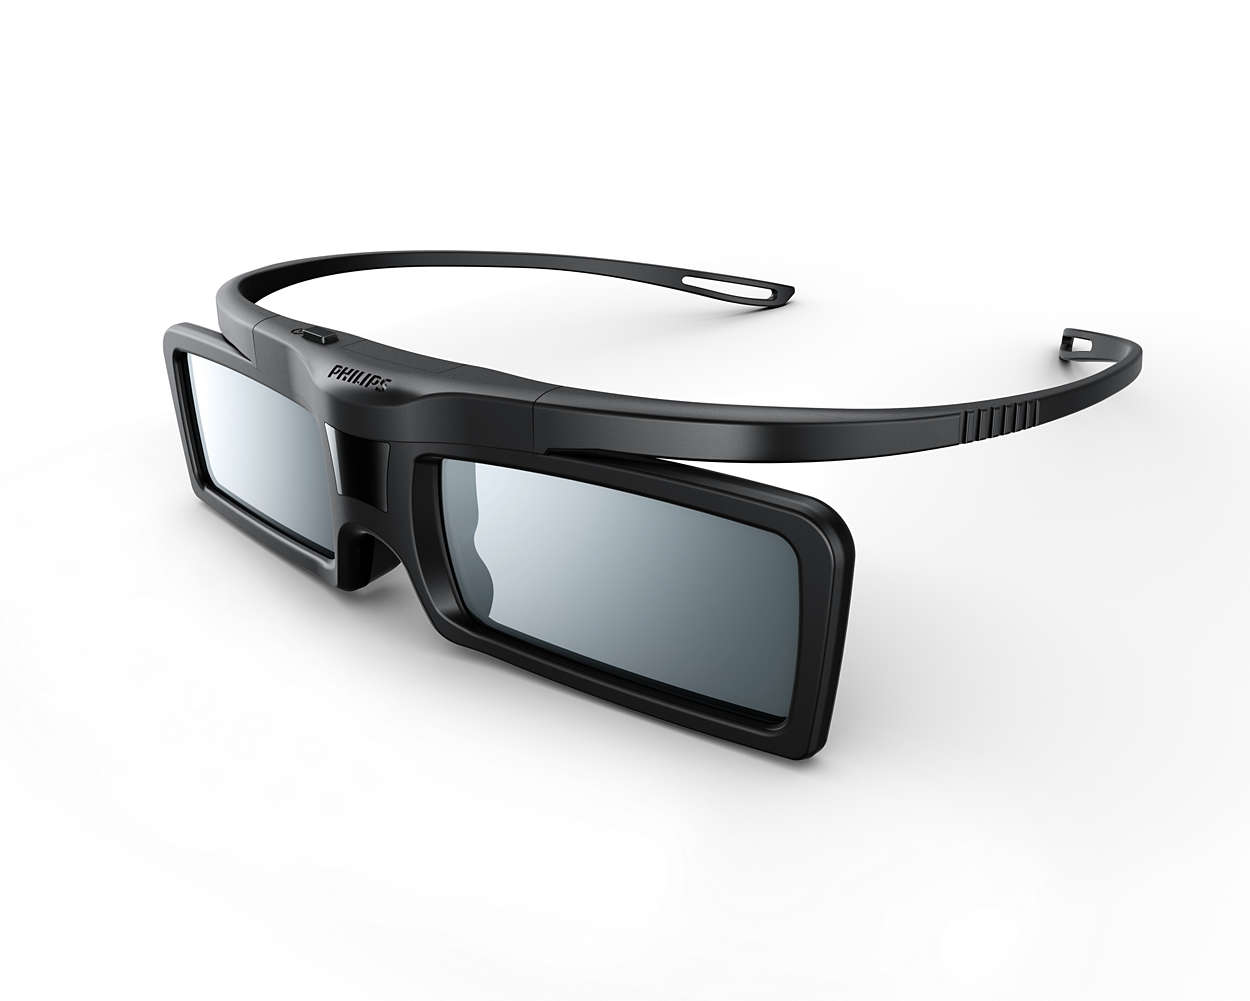 Full HD 3D for an authentic viewing experience